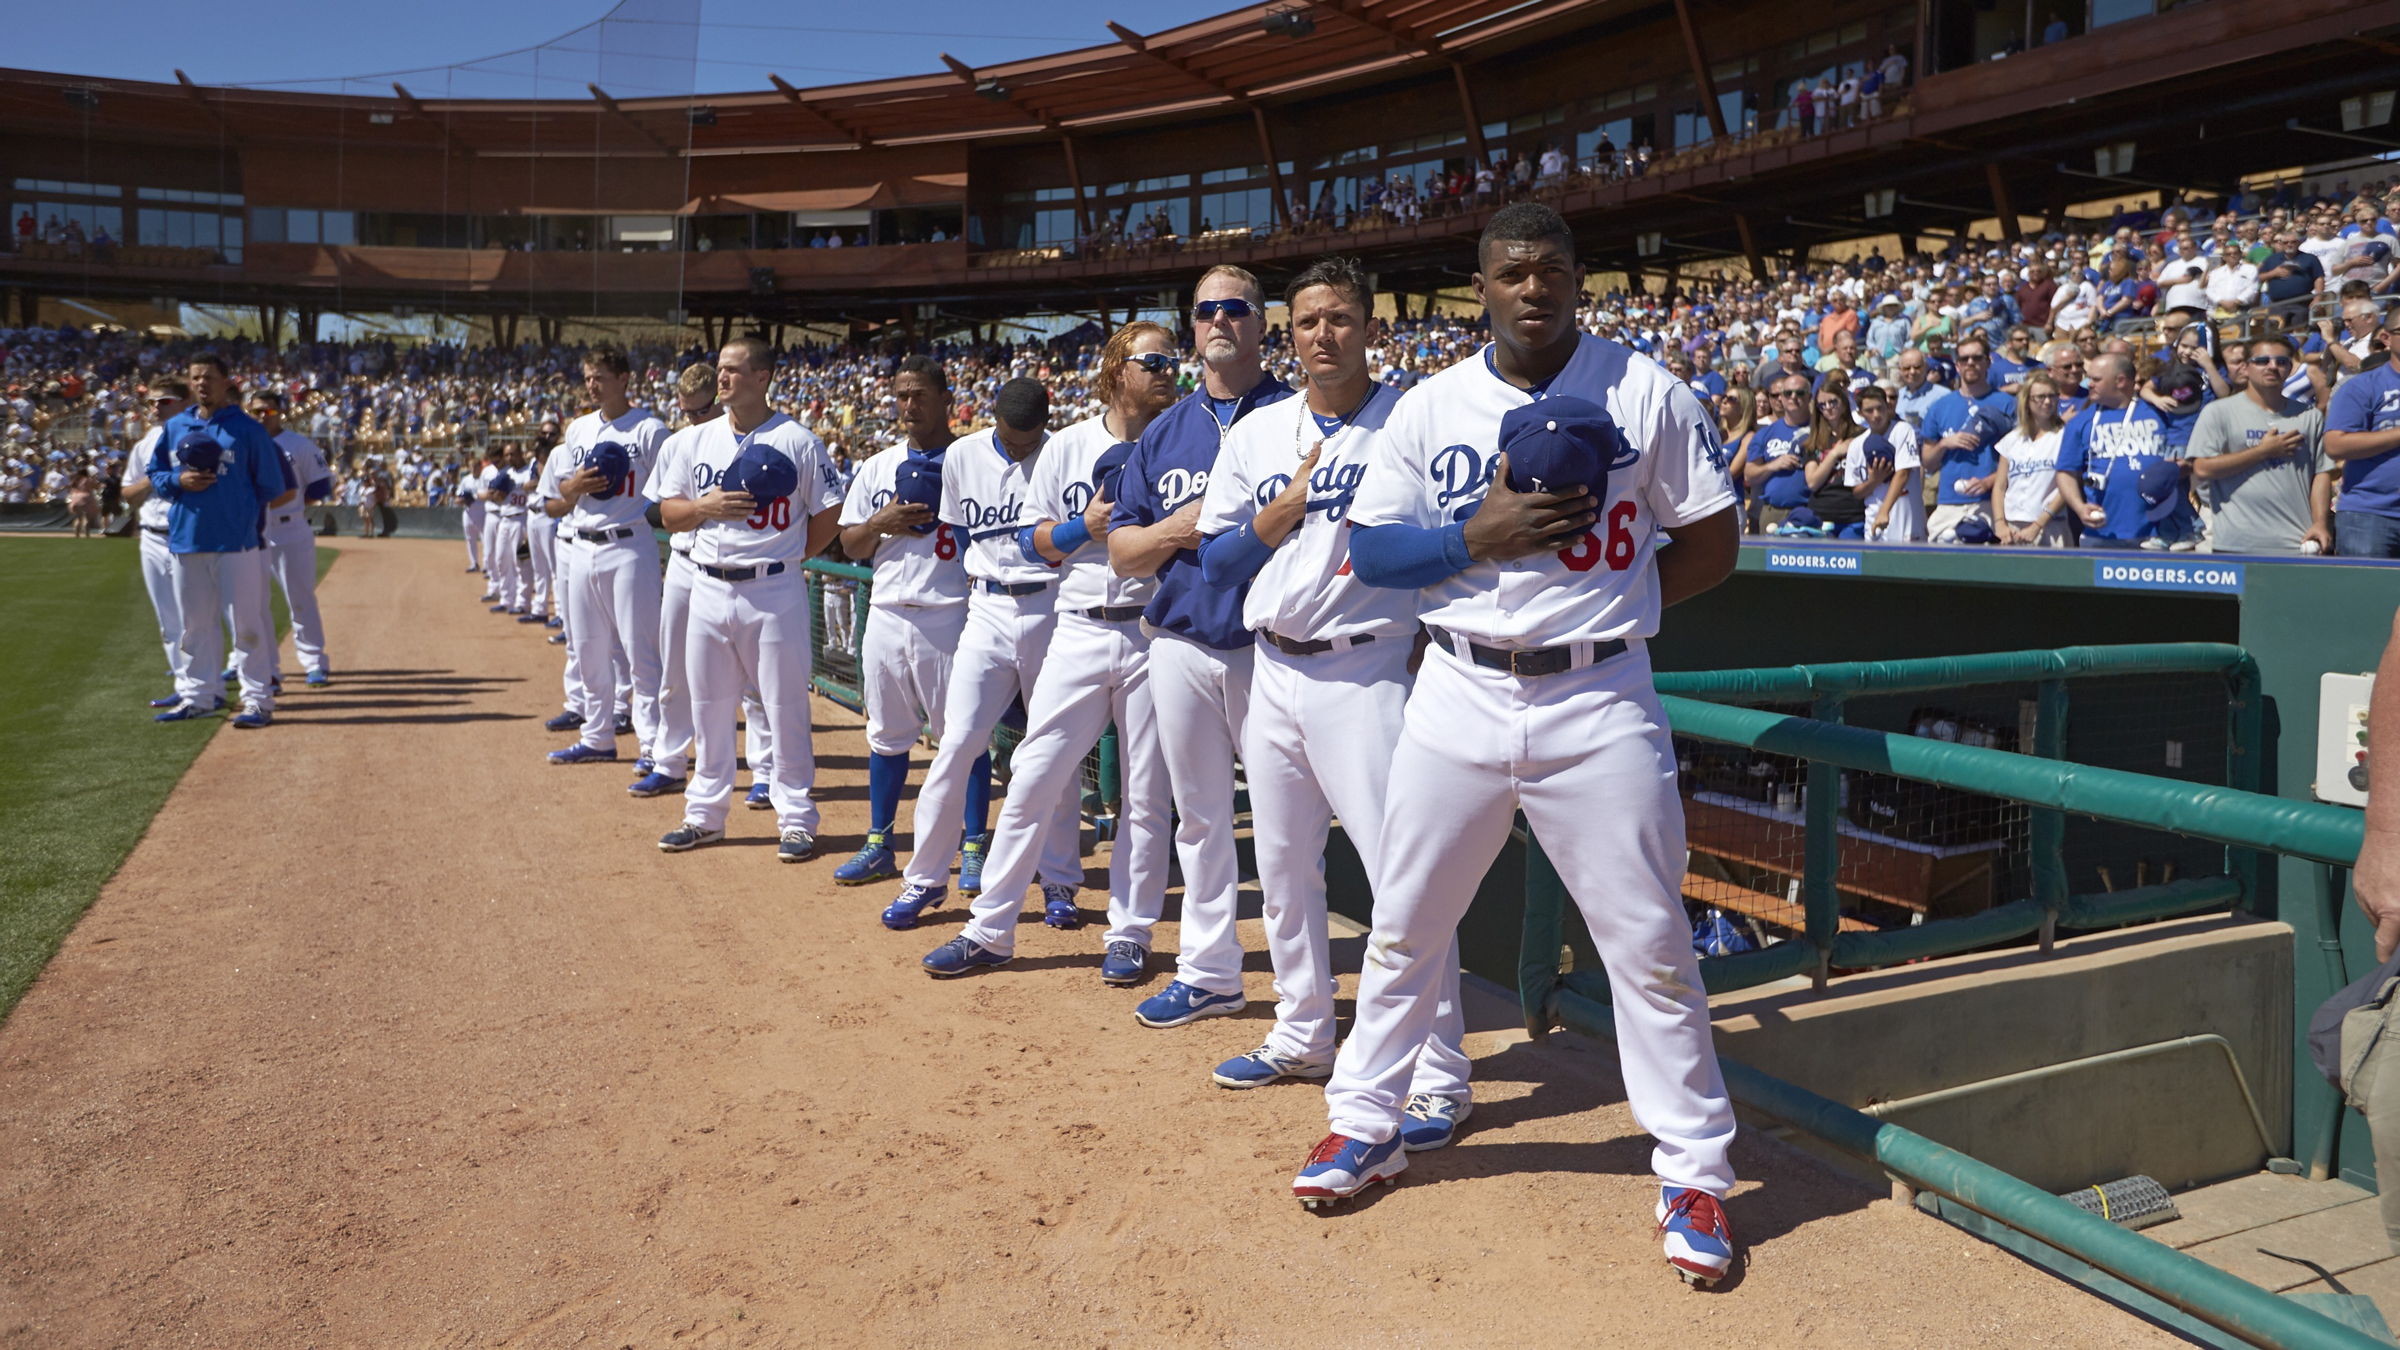 why baseball matters still los angeles dodgers yasiel puig 66 and teammates stand for the national anthem before spring training game vs san francisco giants at camelback ranch in